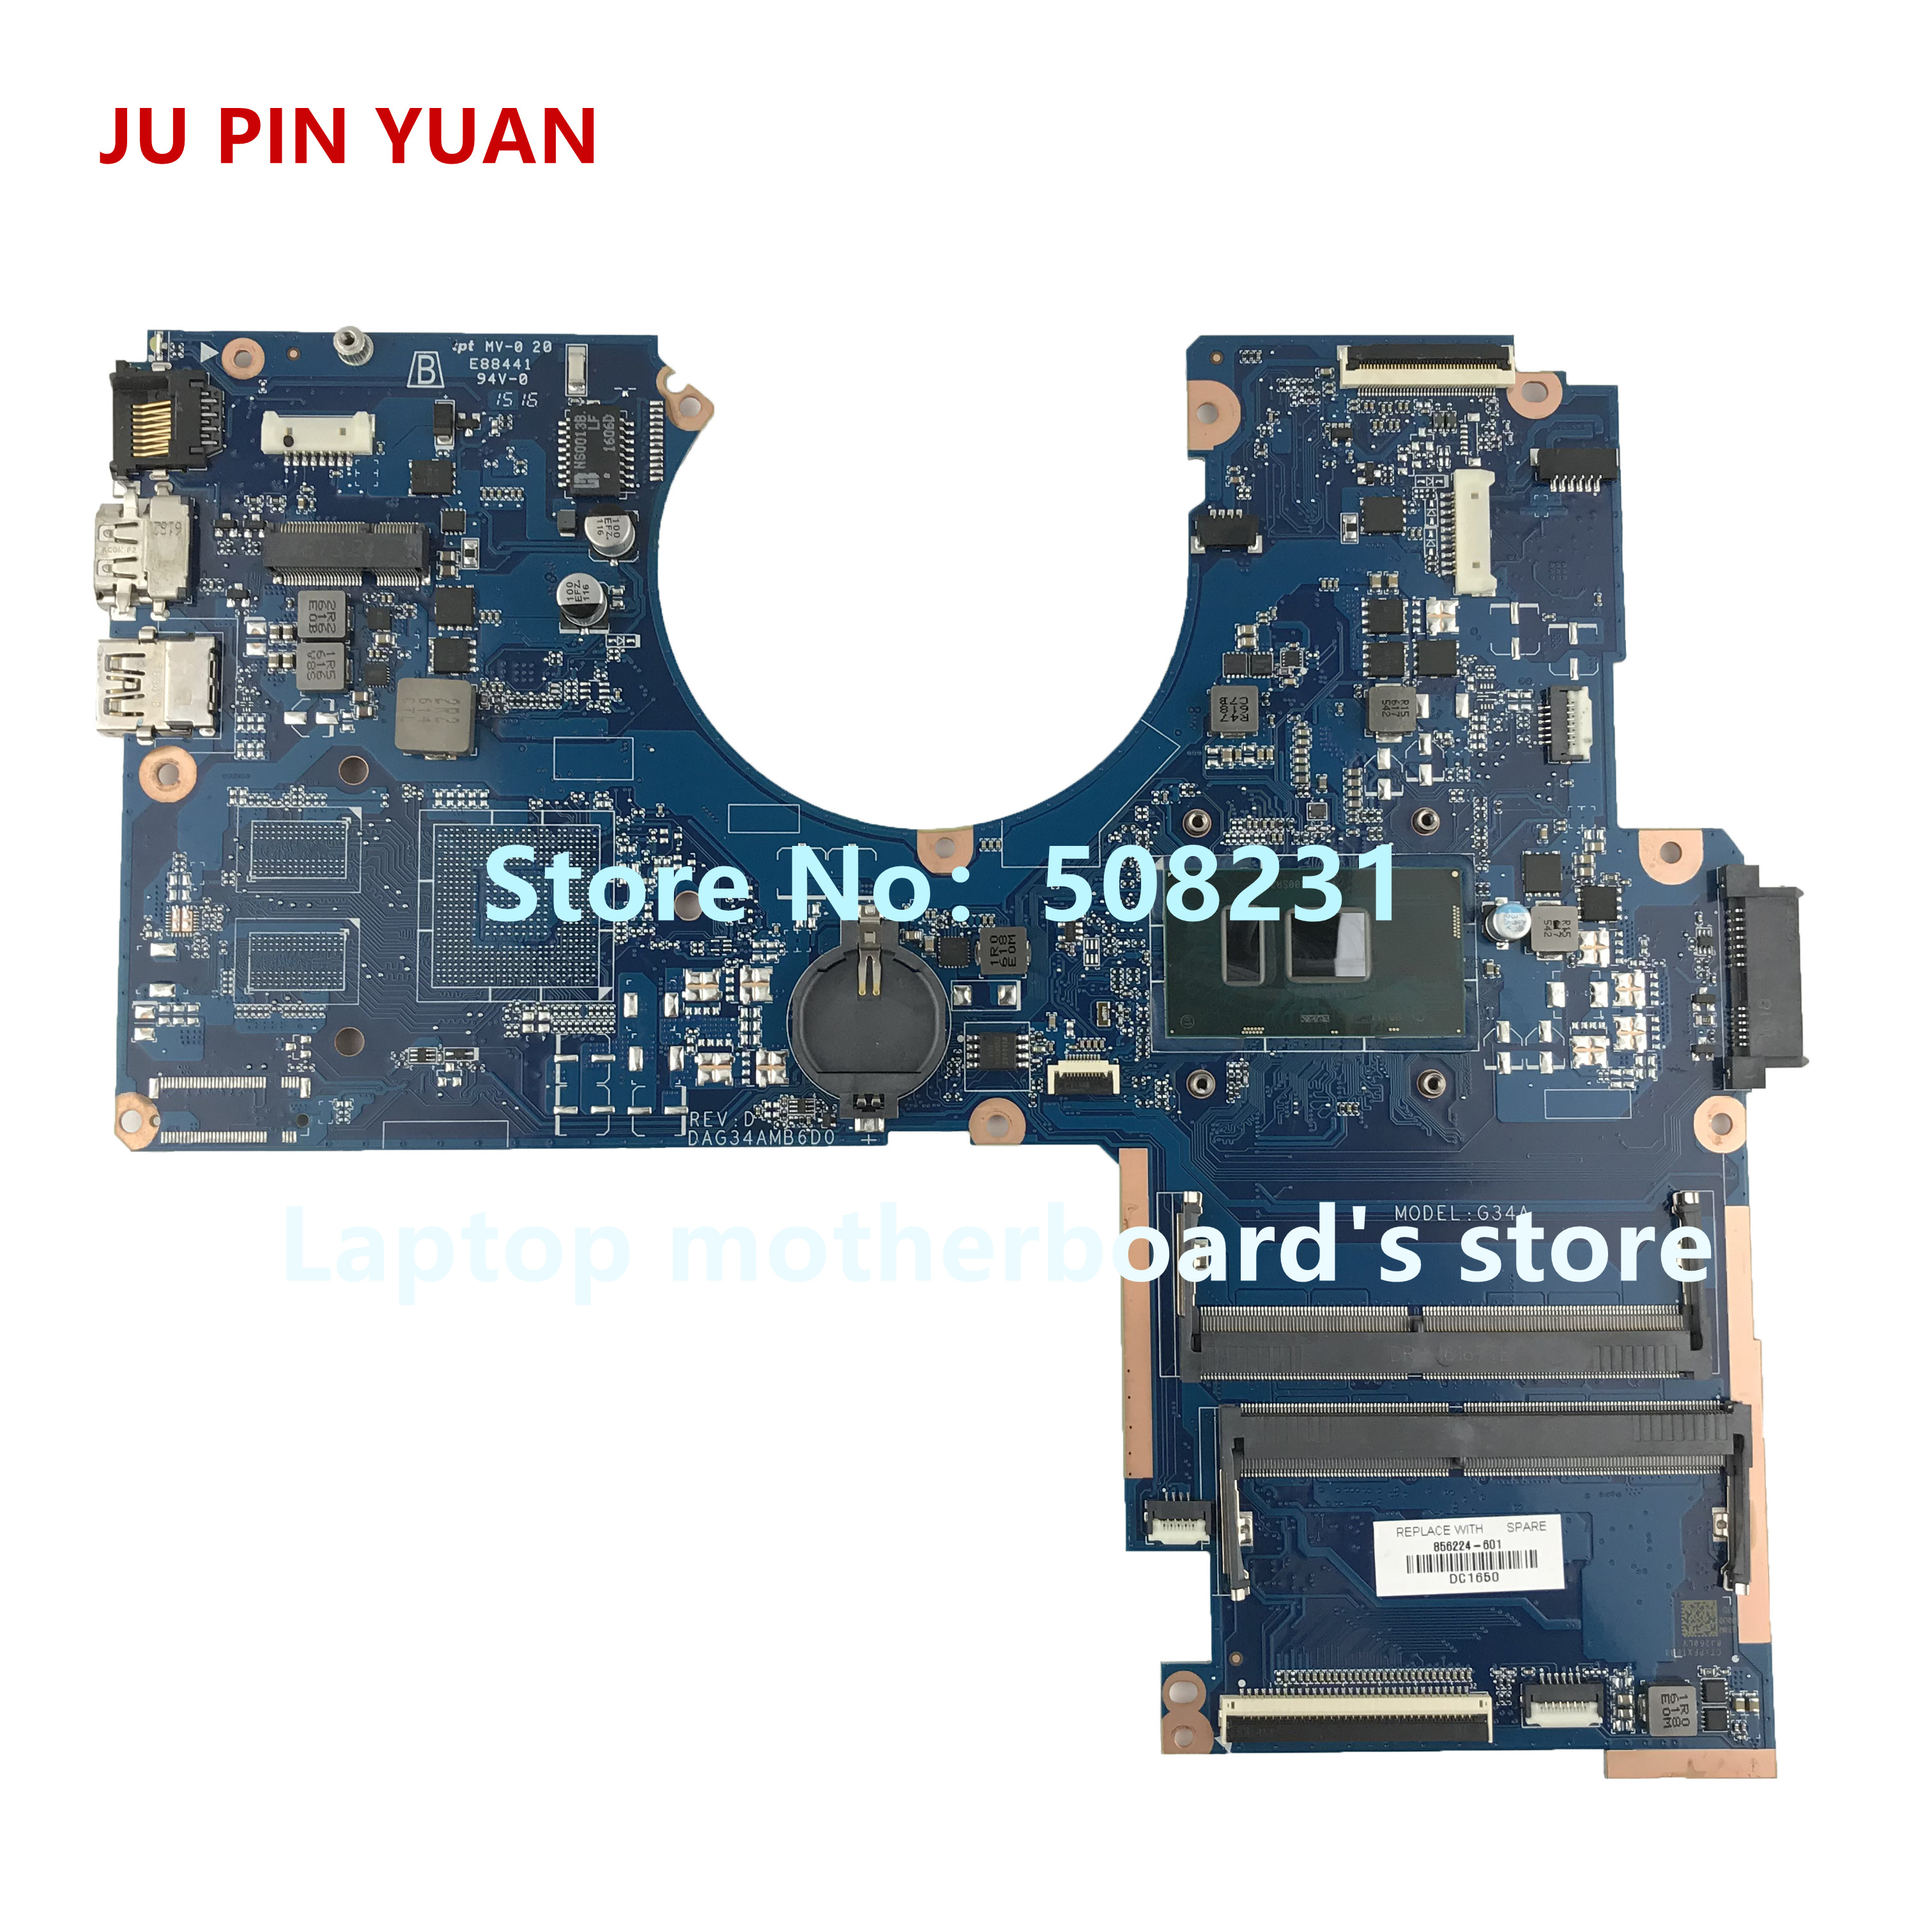 Ju Pin Yuan 856224-501 856224-601 G34a Dag34amb6d0 Mainboard For Hp Pavilion Notebook 15-au 15t-au Laptop Motherboard I5-6200u Diversified In Packaging Computer & Office